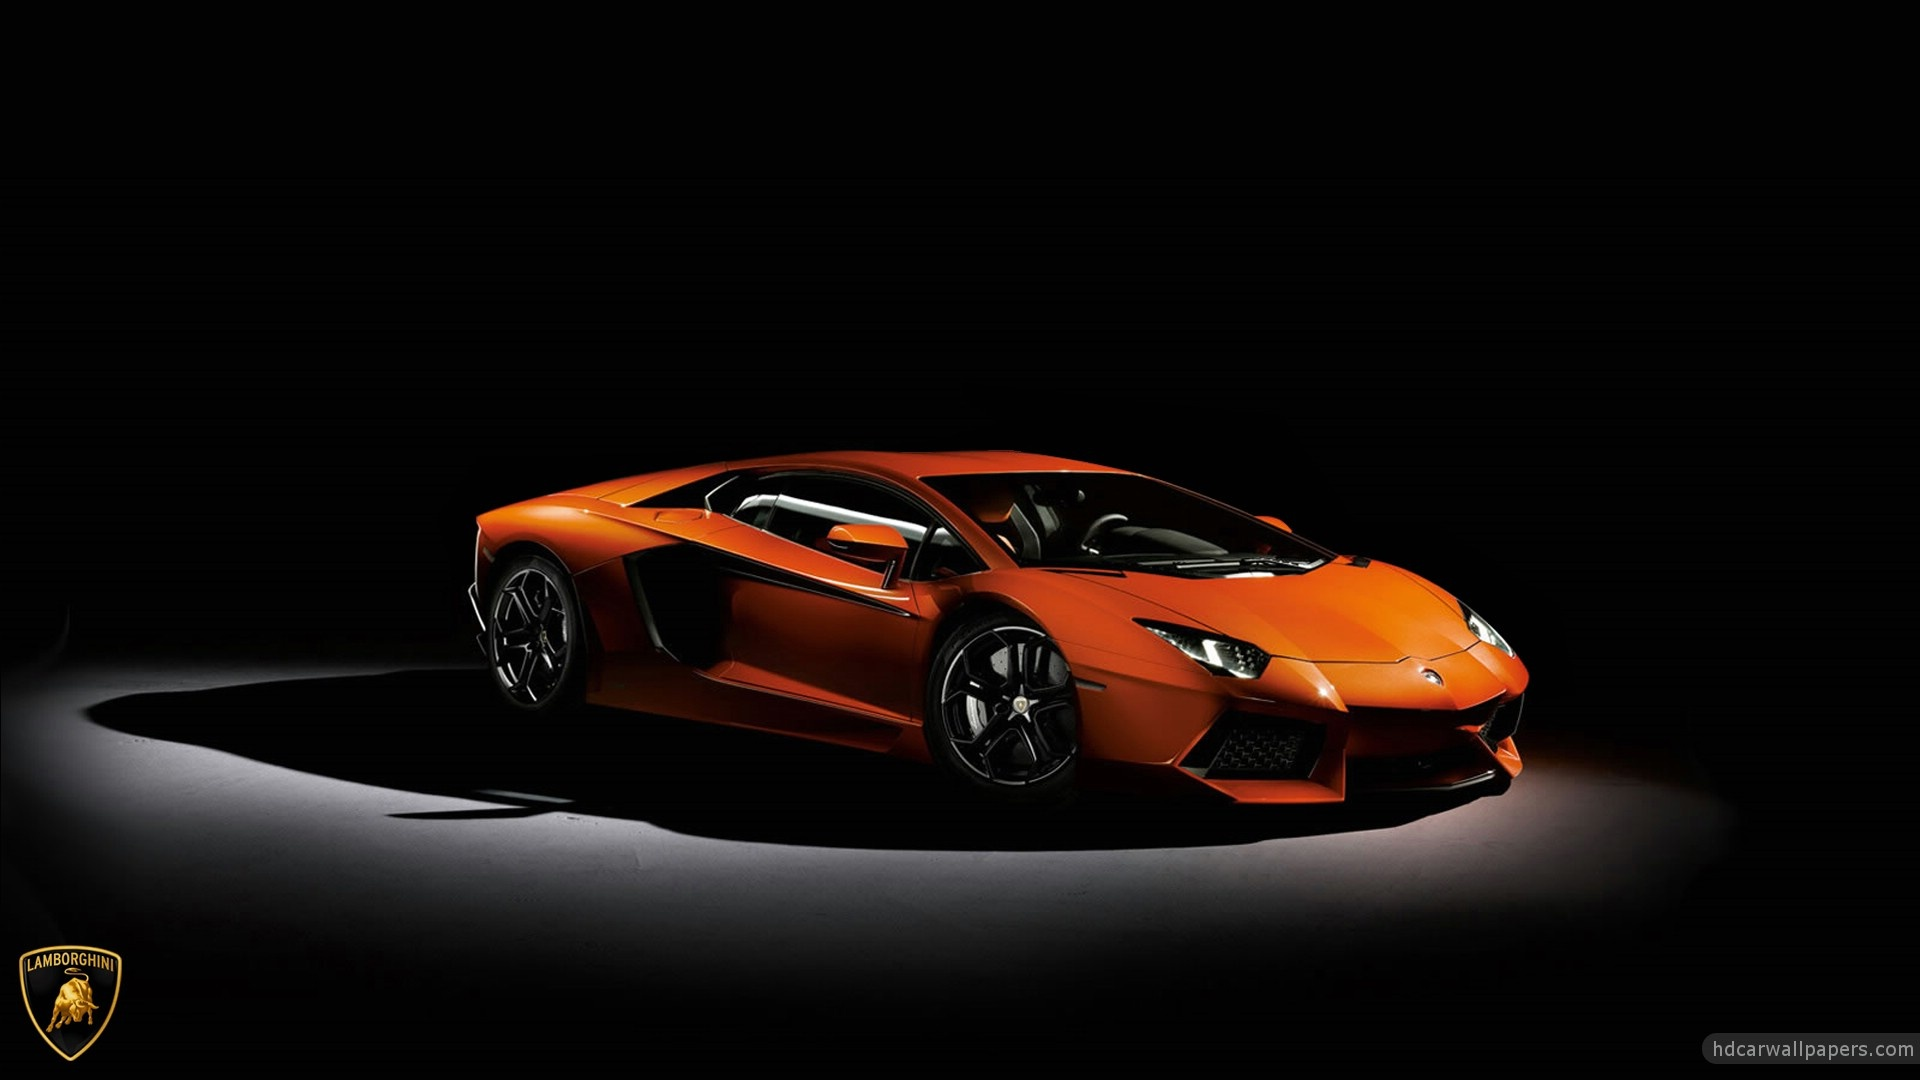 Lamborghini Aventador HD Wallpaper in 1920x1080 Resolution 1920x1080